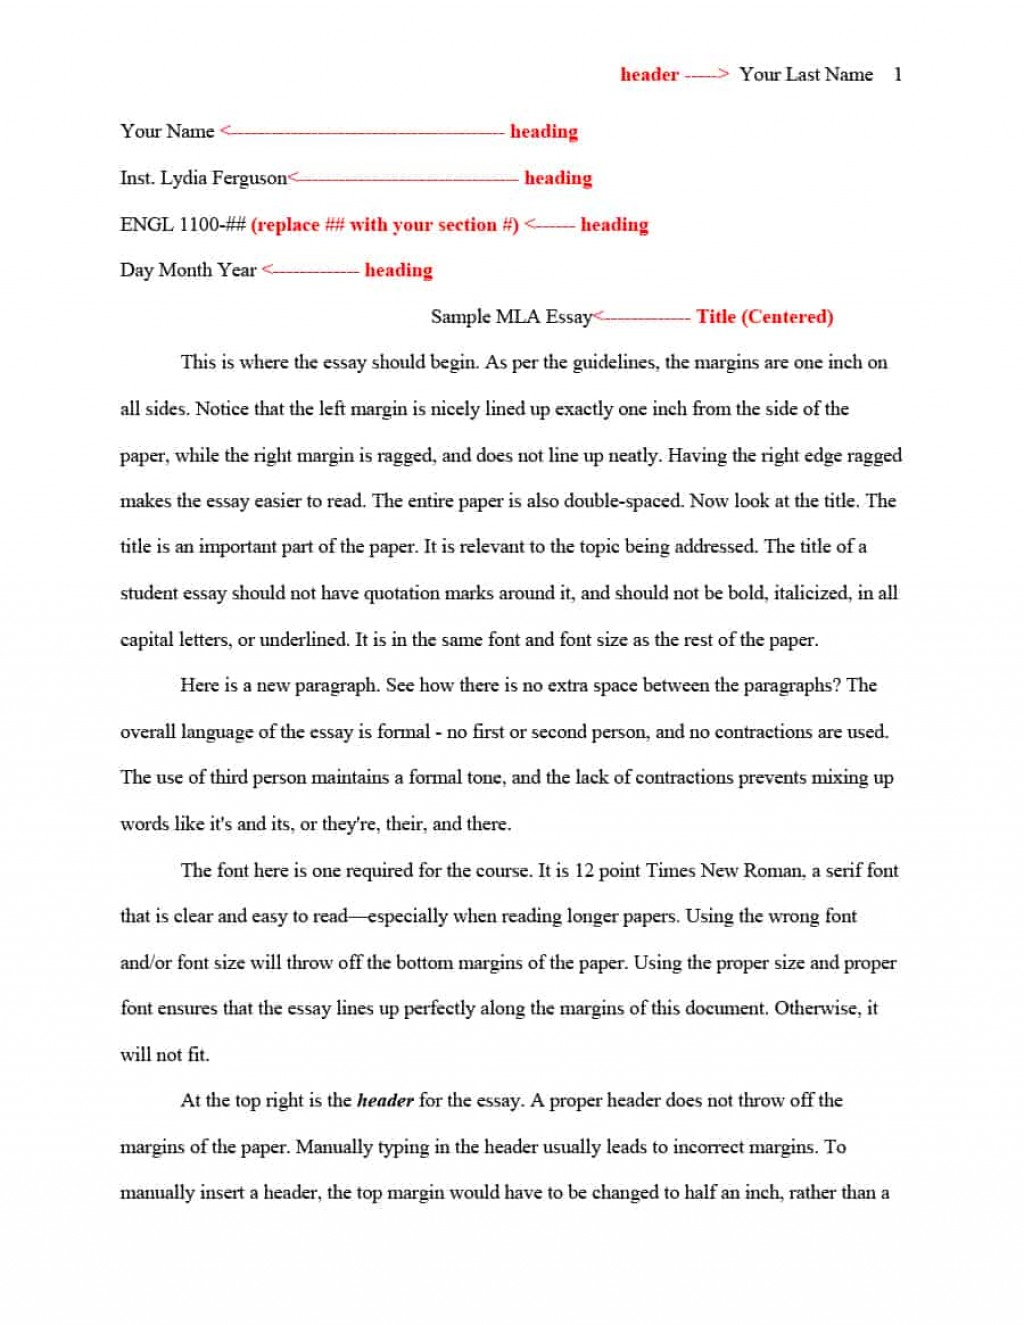 009 Essay Example Mla Format Template Sensational Font Google Docs Heading Large